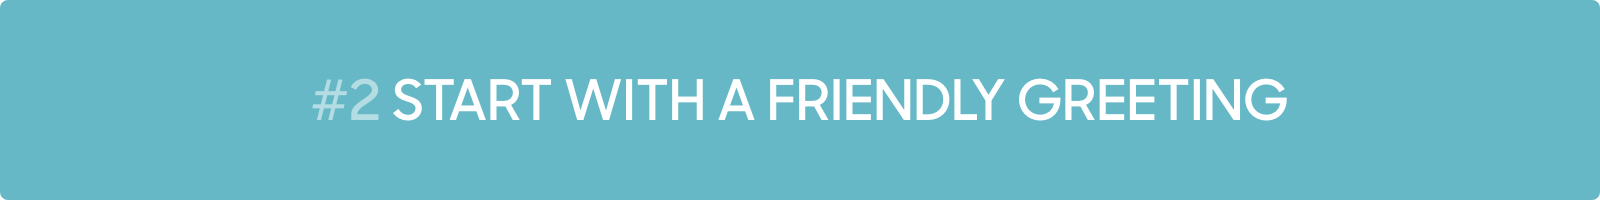 Conversational Marketing Tip #1: Start with a friendly greeting